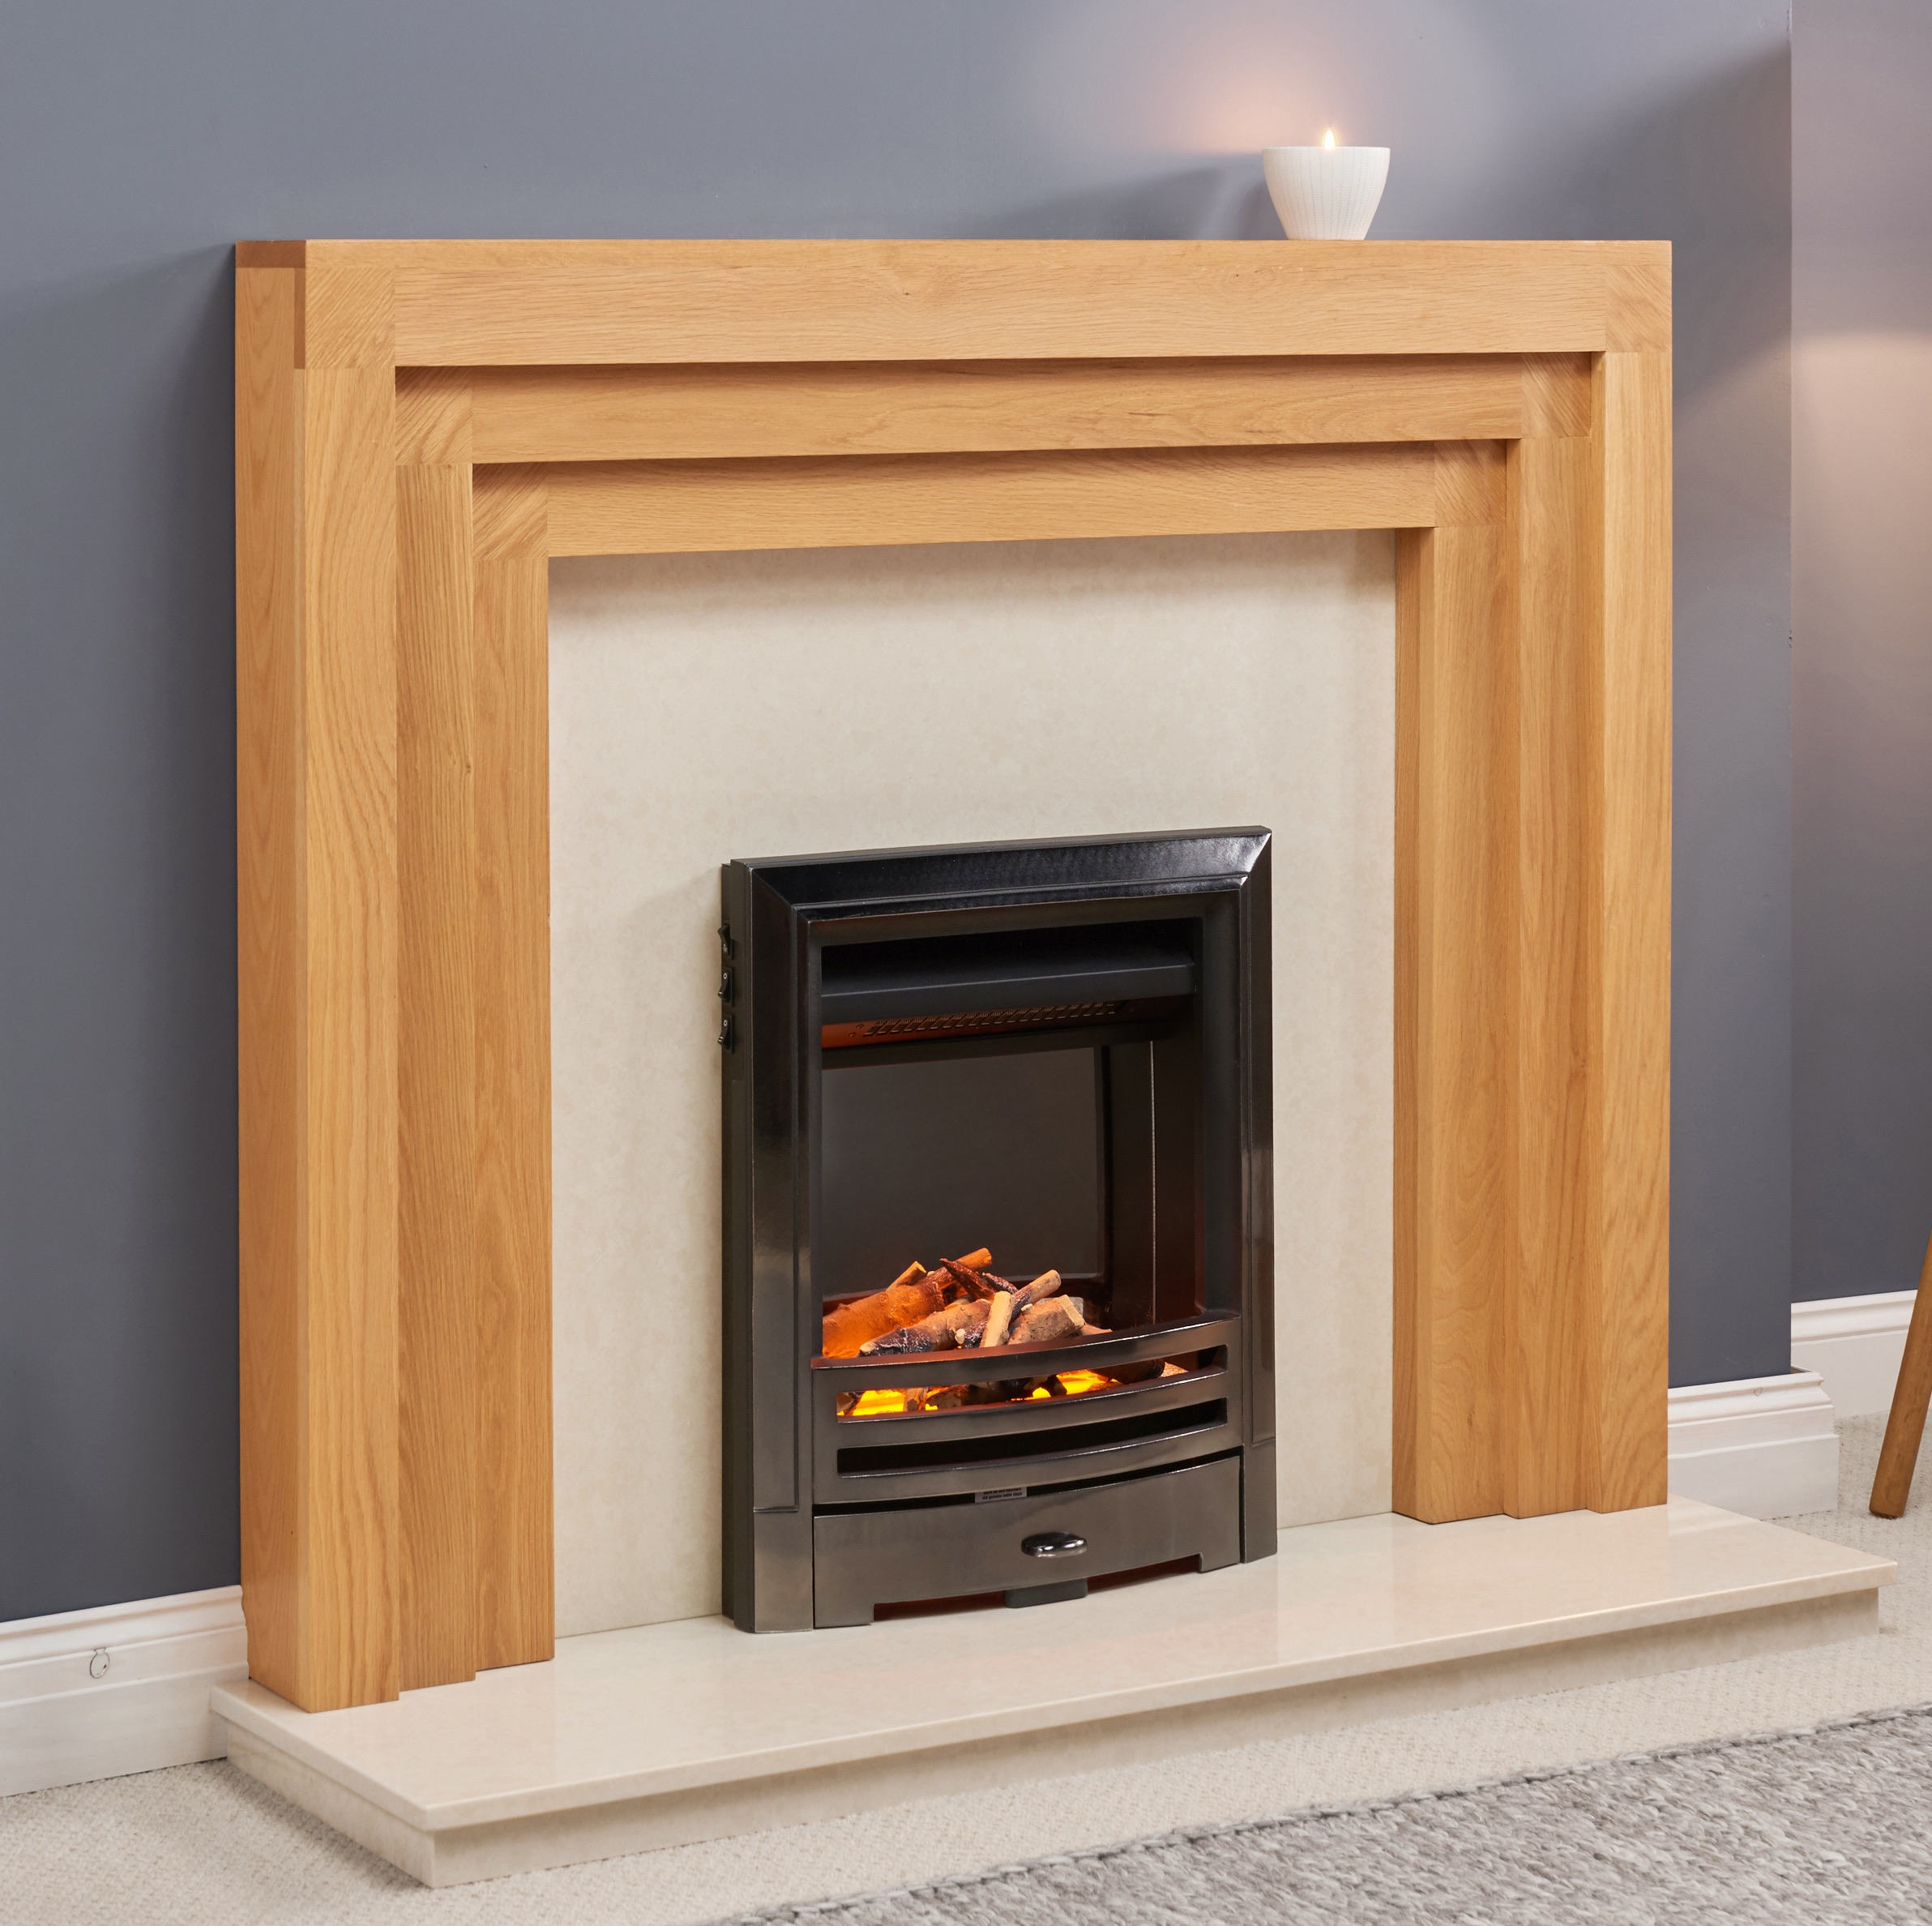 Fairways Milan Solid Oak Fire Surround